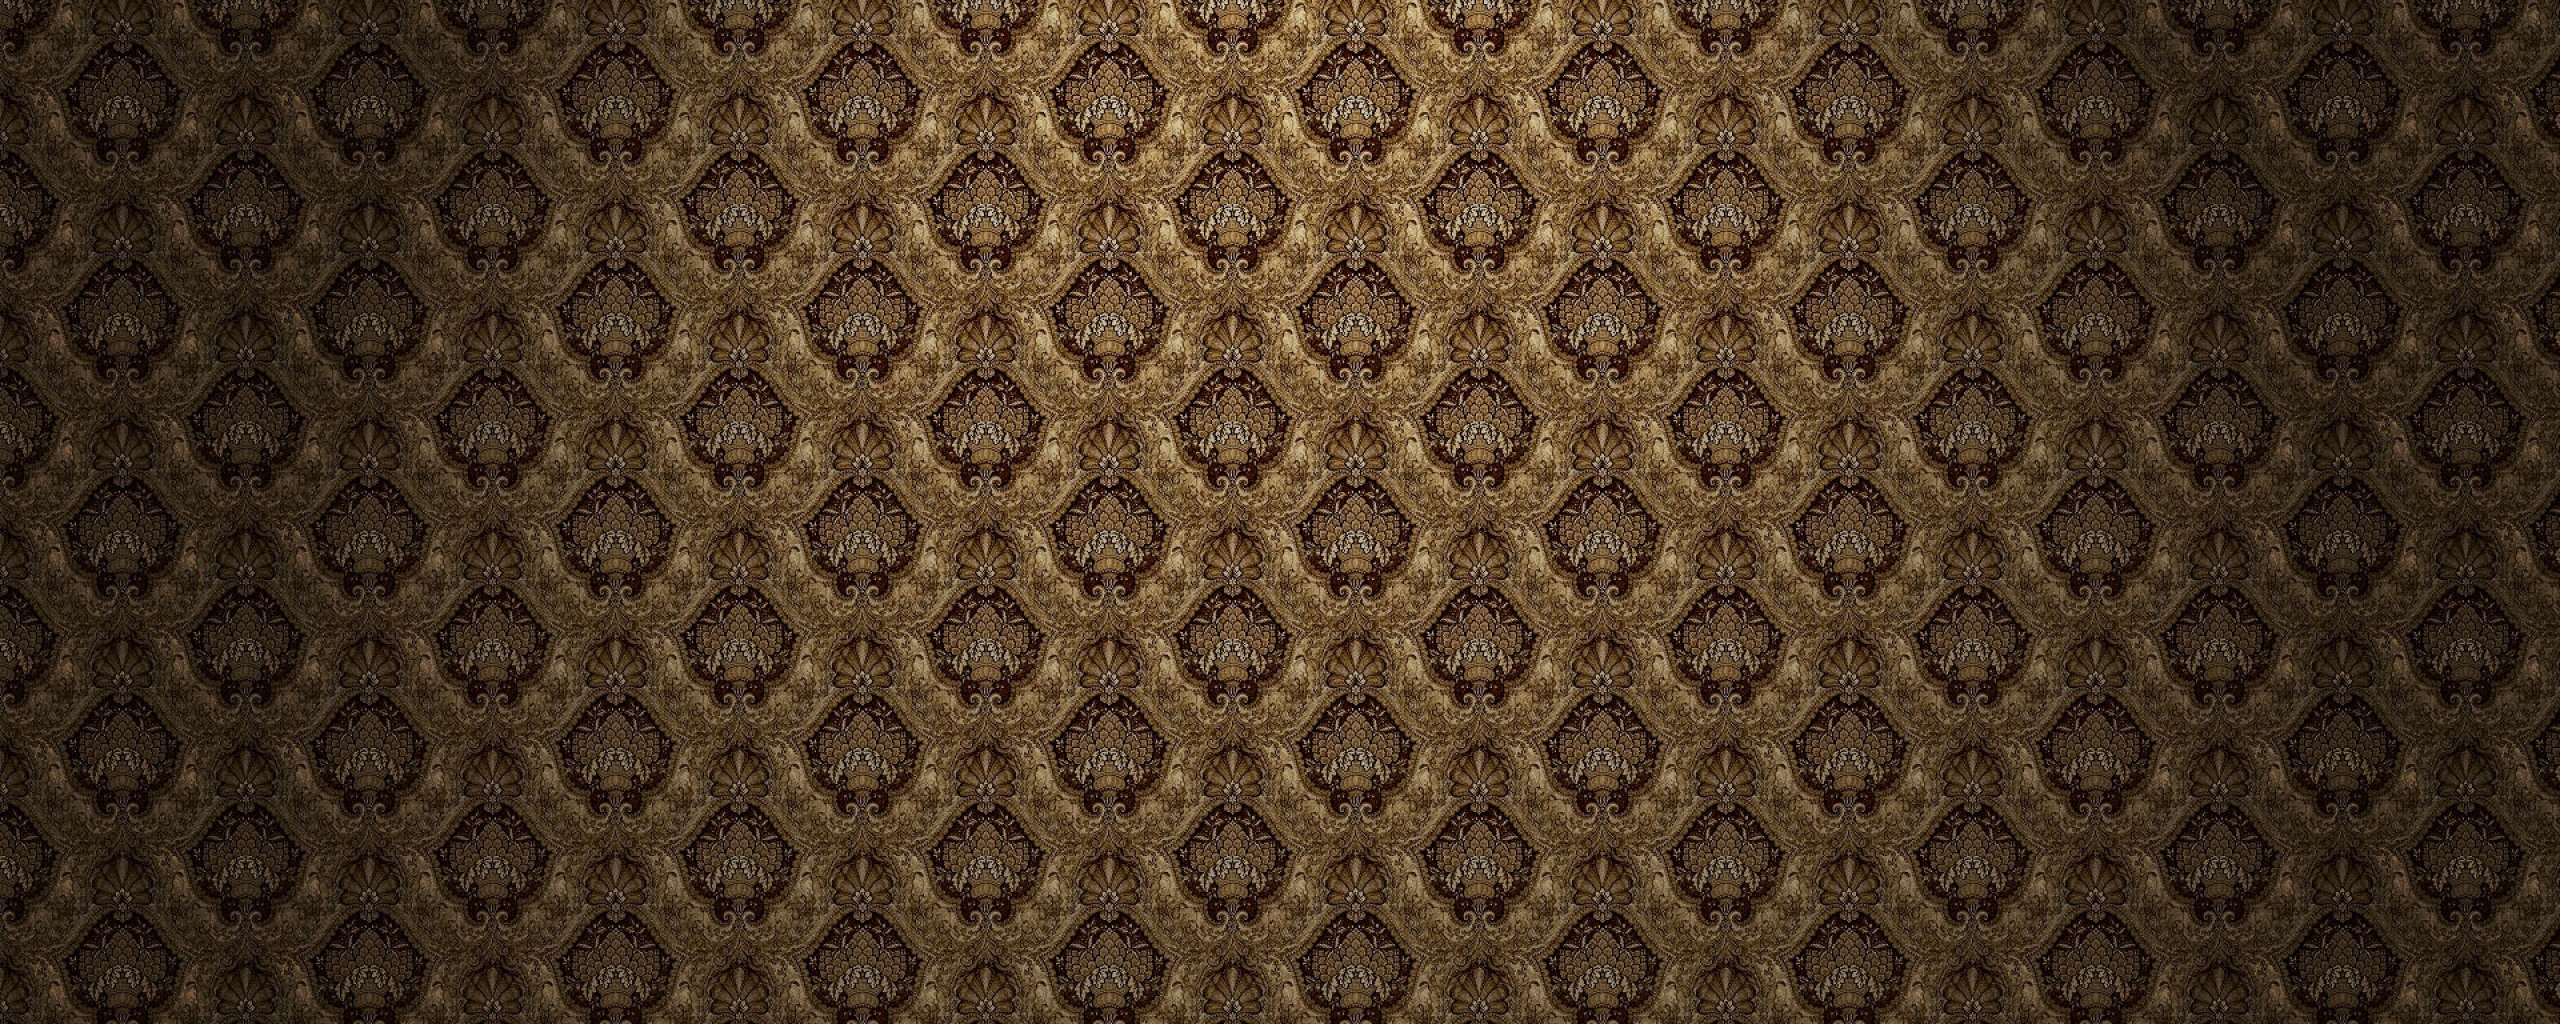 Old Wallpaper Patterns